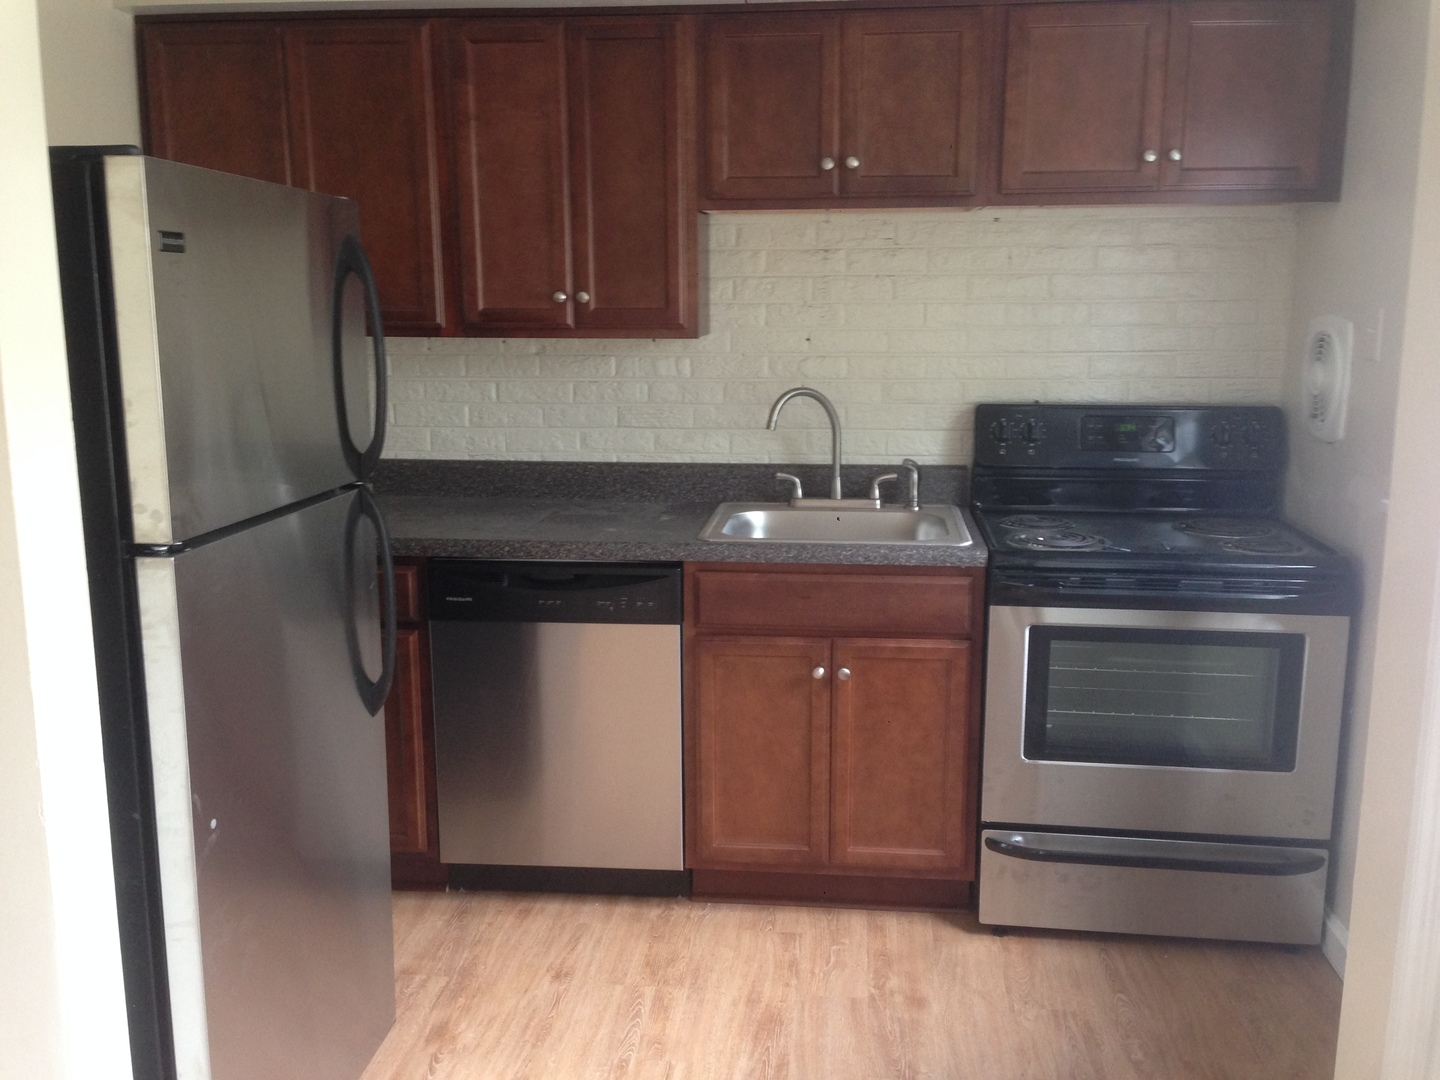 Uncategorized Kitchen Appliances Richmond Va 5012 cedarbend lane richmond va 23237 hotpads kitchen appliances rental listings va